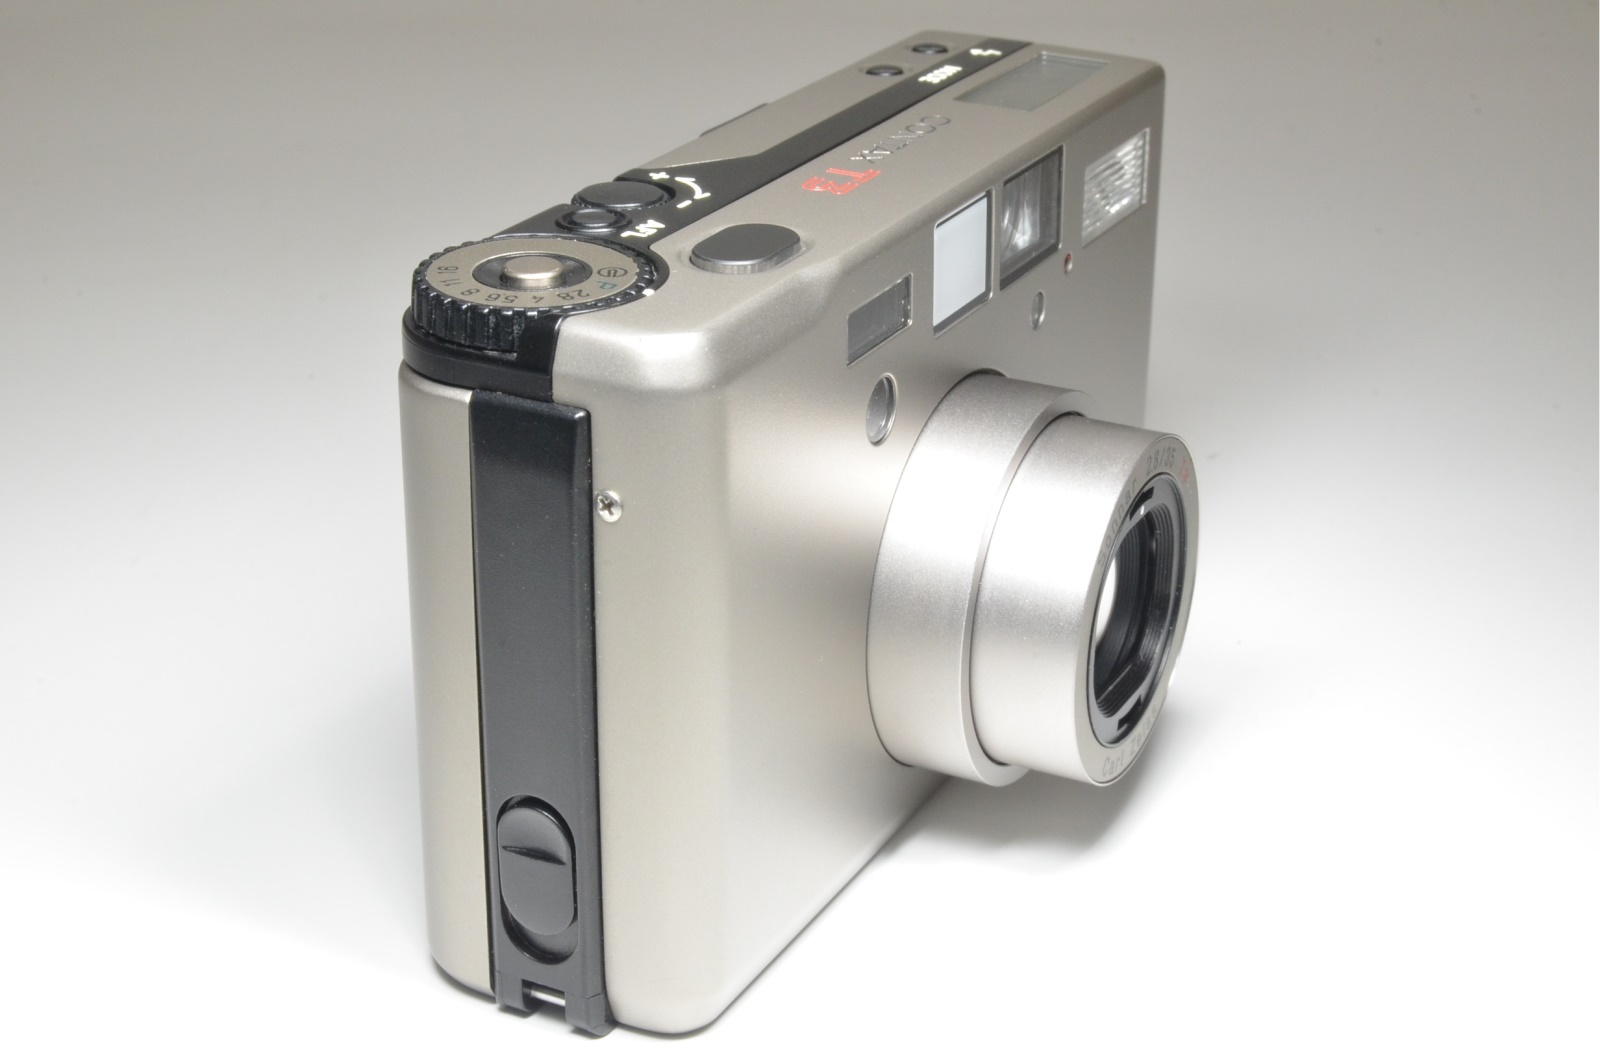 contax t3 titanium silver with adapter, lens filter, metal hood